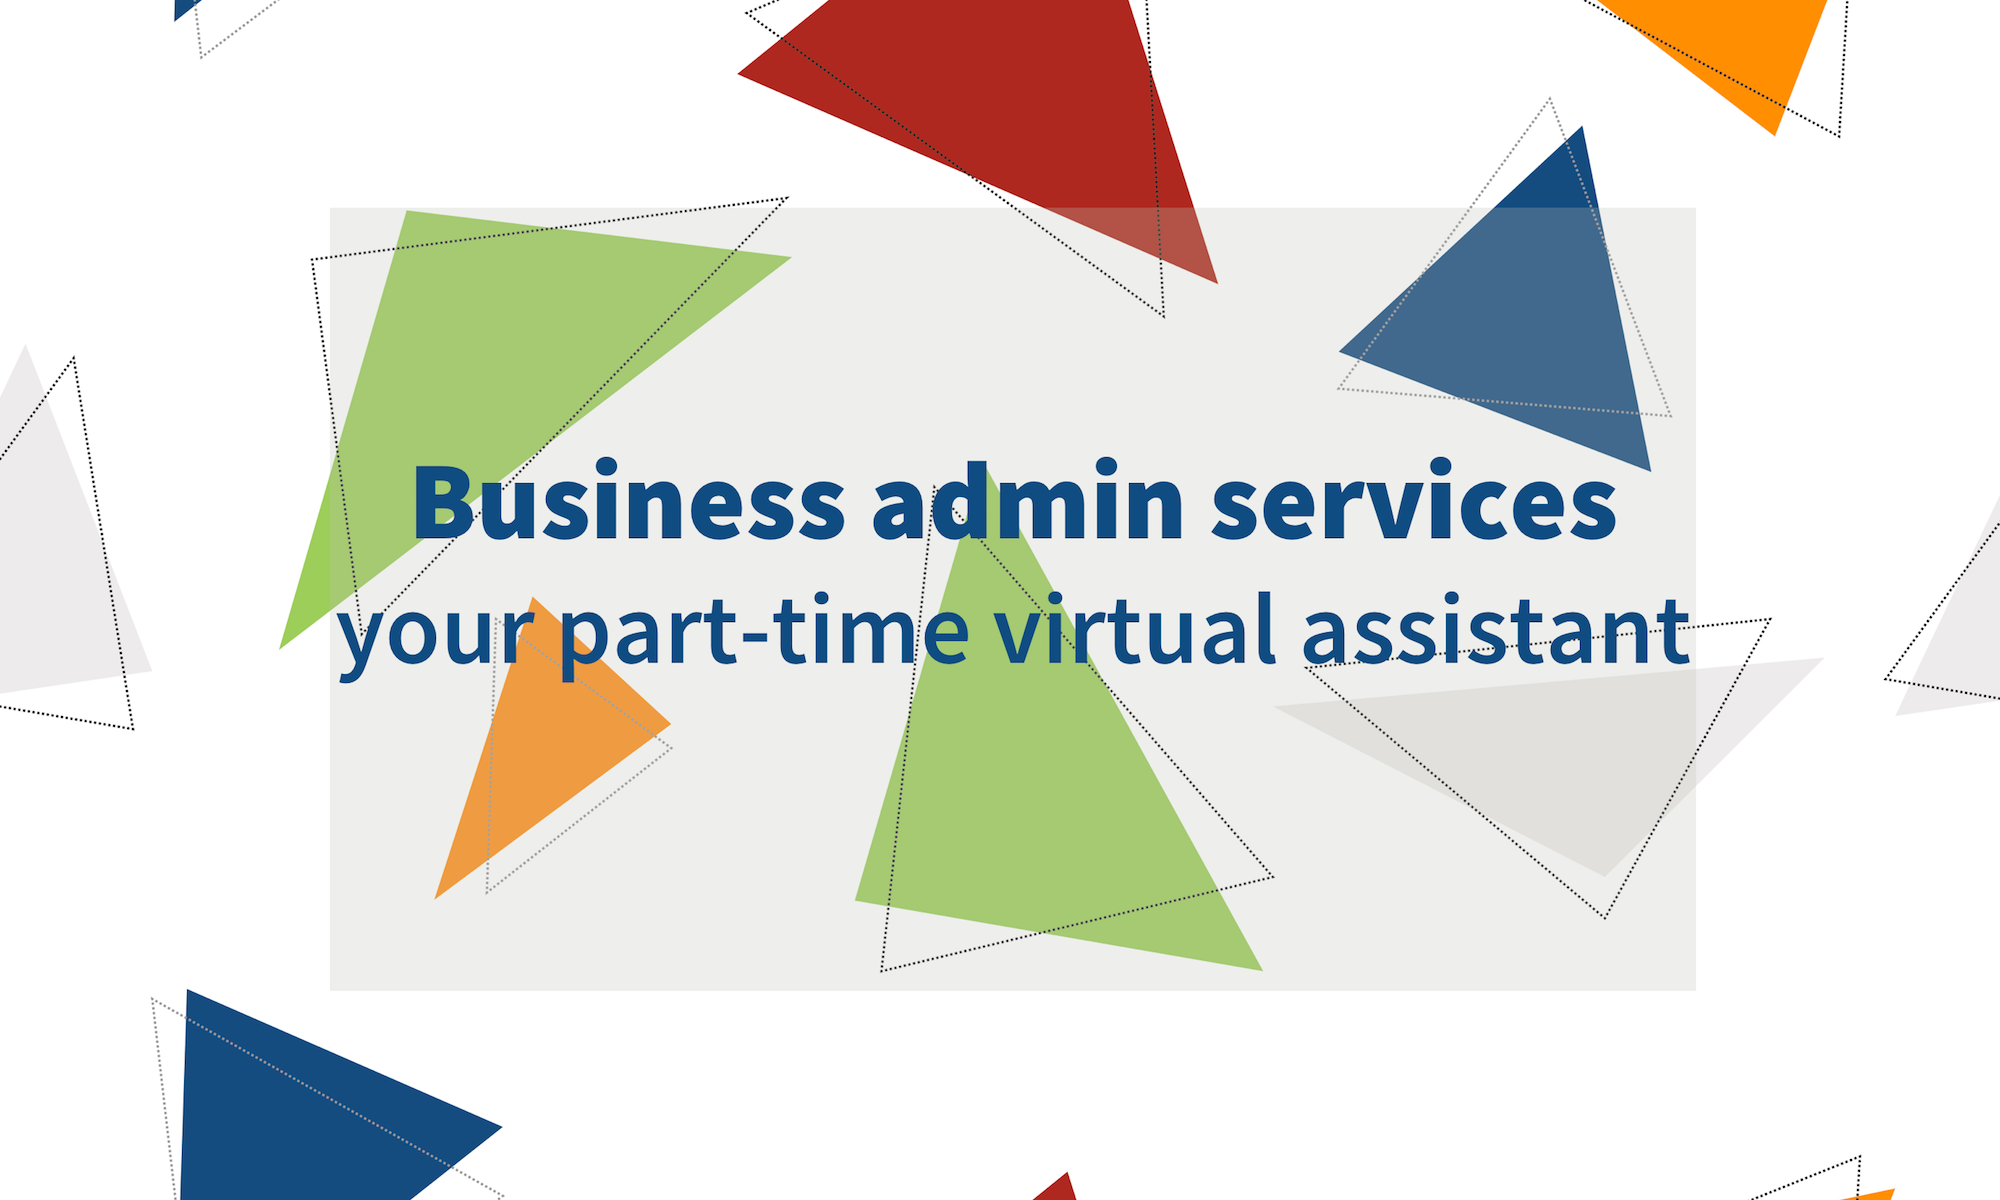 business admin services